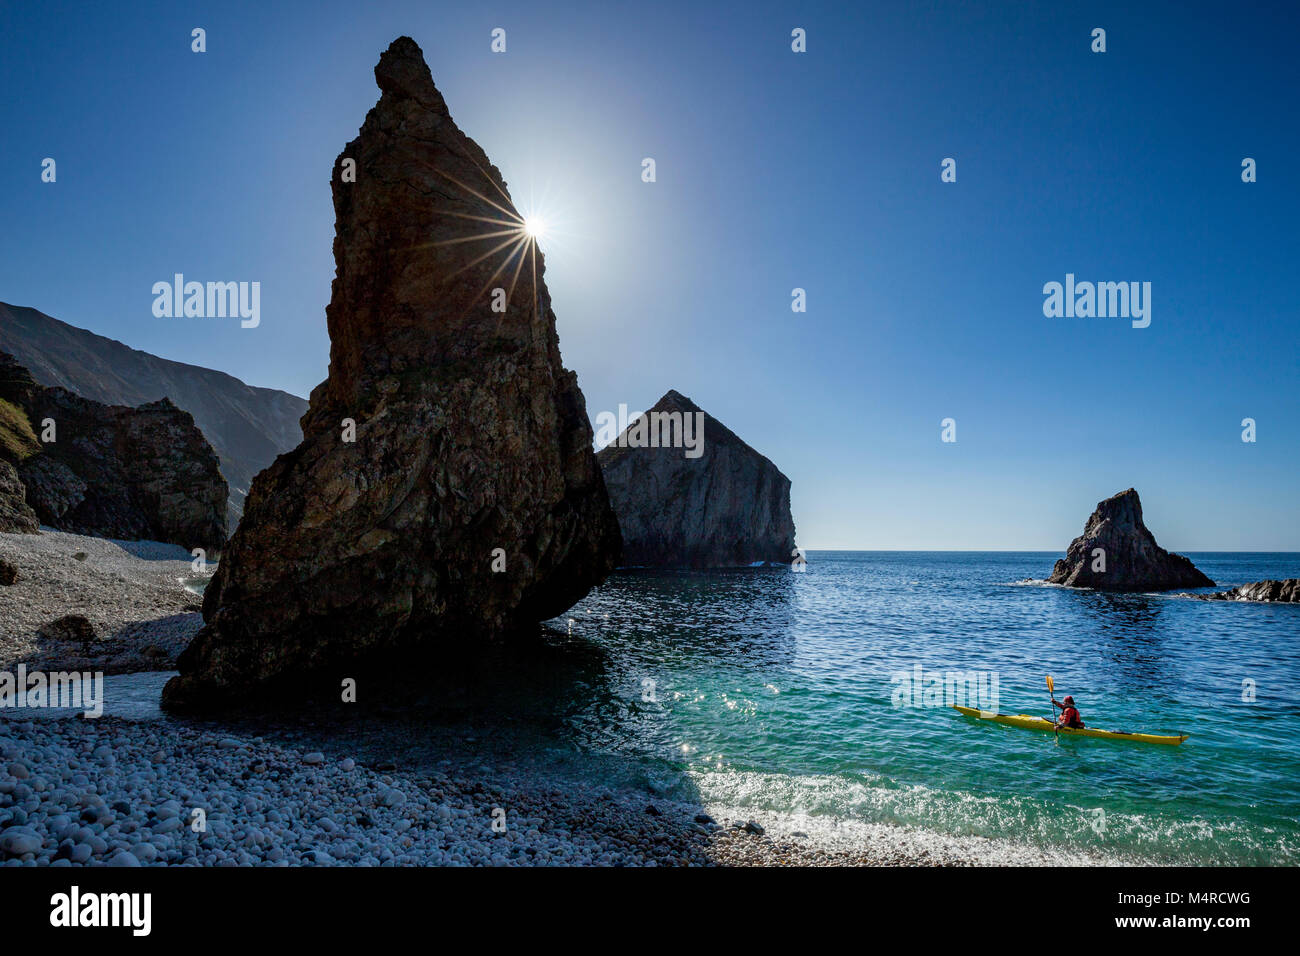 Sea kayaking beside stacks and pinnacles beneath Slieve Tooey, County Donegal, Ireland. - Stock Image